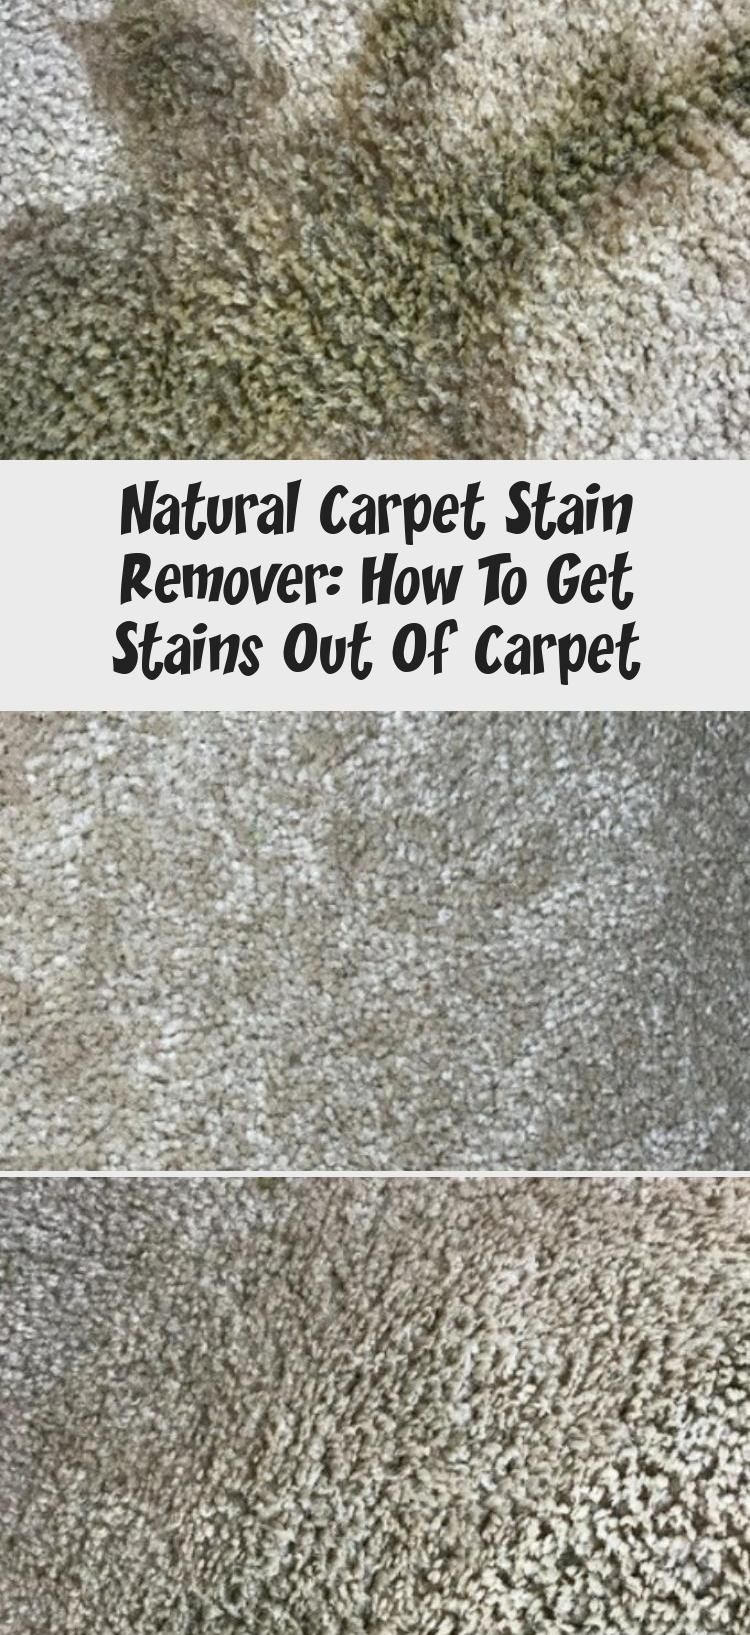 Natural Carpet Stain Remover How To Get Stains Out Of Carpet In 2020 Stain Remover Carpet Natural Carpet Natural Carpet Cleaners